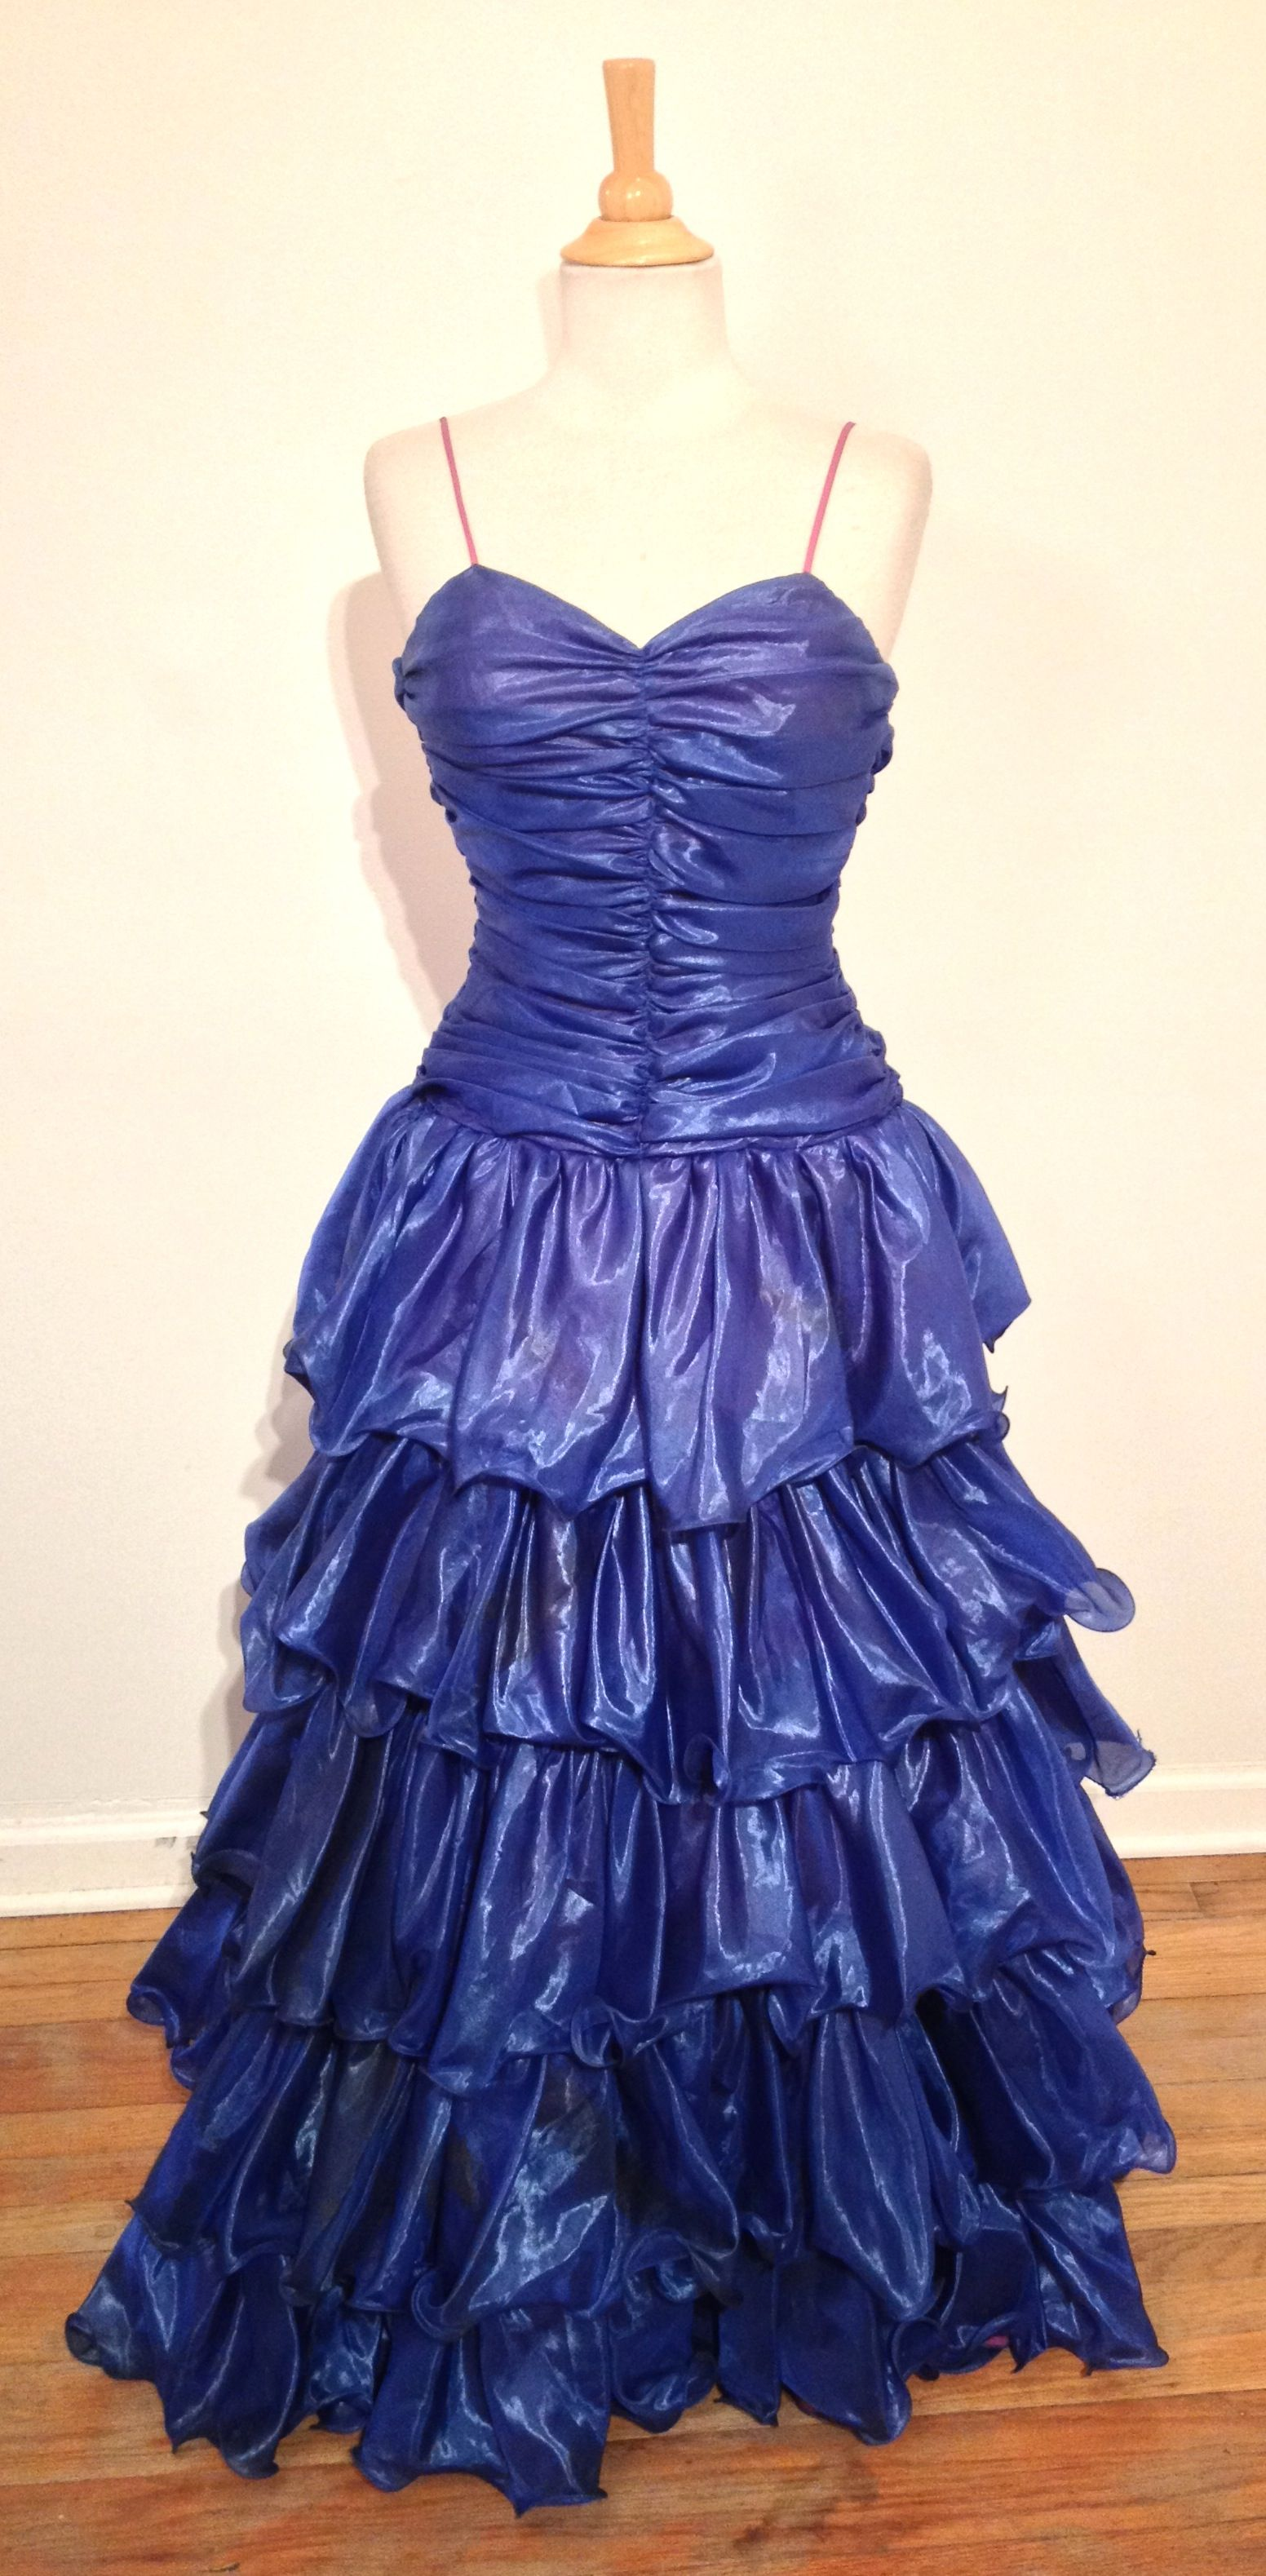 Newly Listed!!! Click here to #shop:  http://stores.ebay.com/recycledcouture